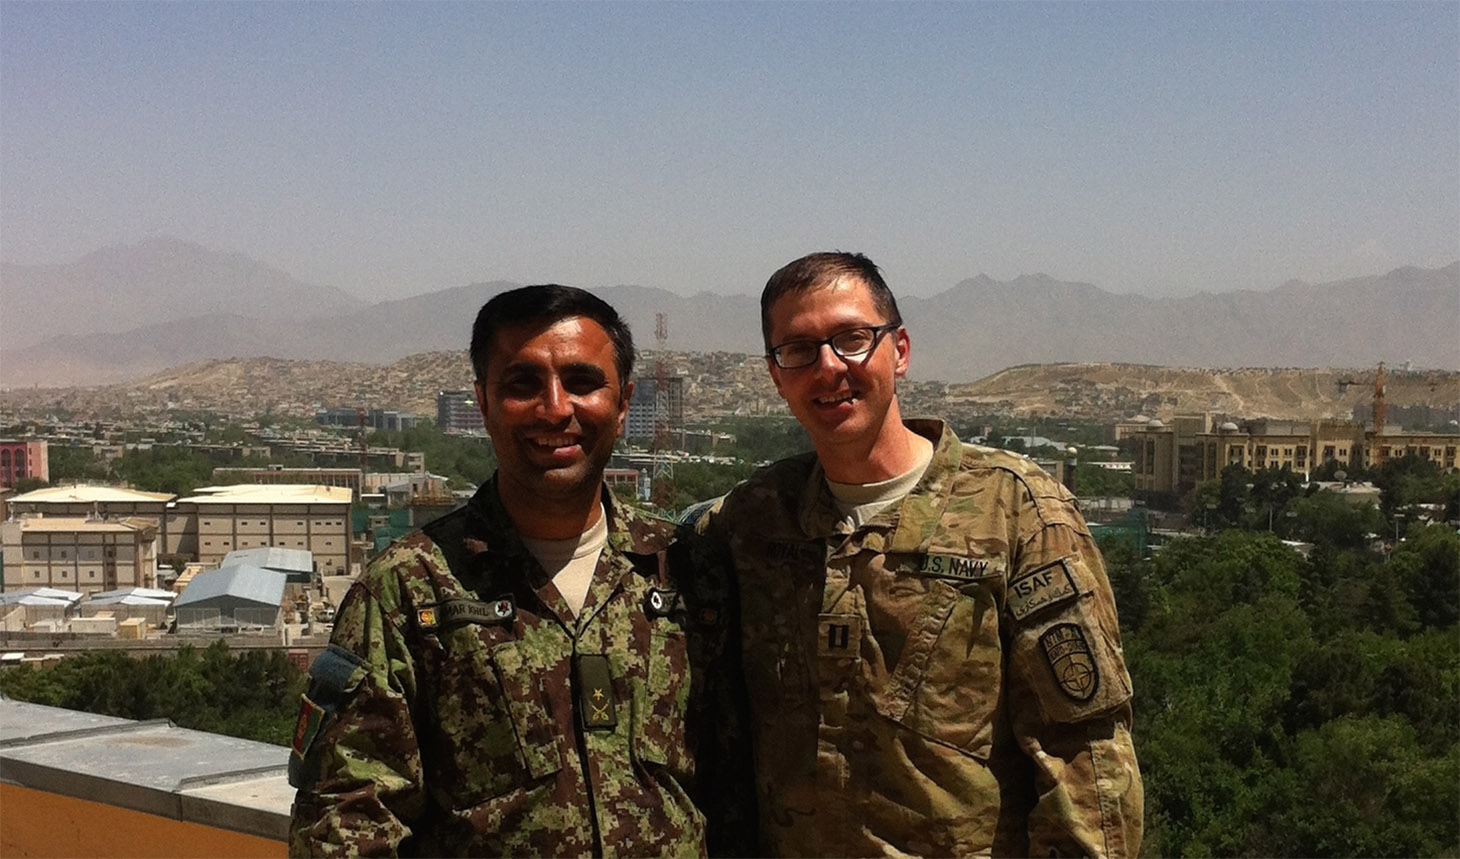 David Royal (right) with Major Hazrat, an Afghan physician. The two are working together to improve quality of care in Kabul.